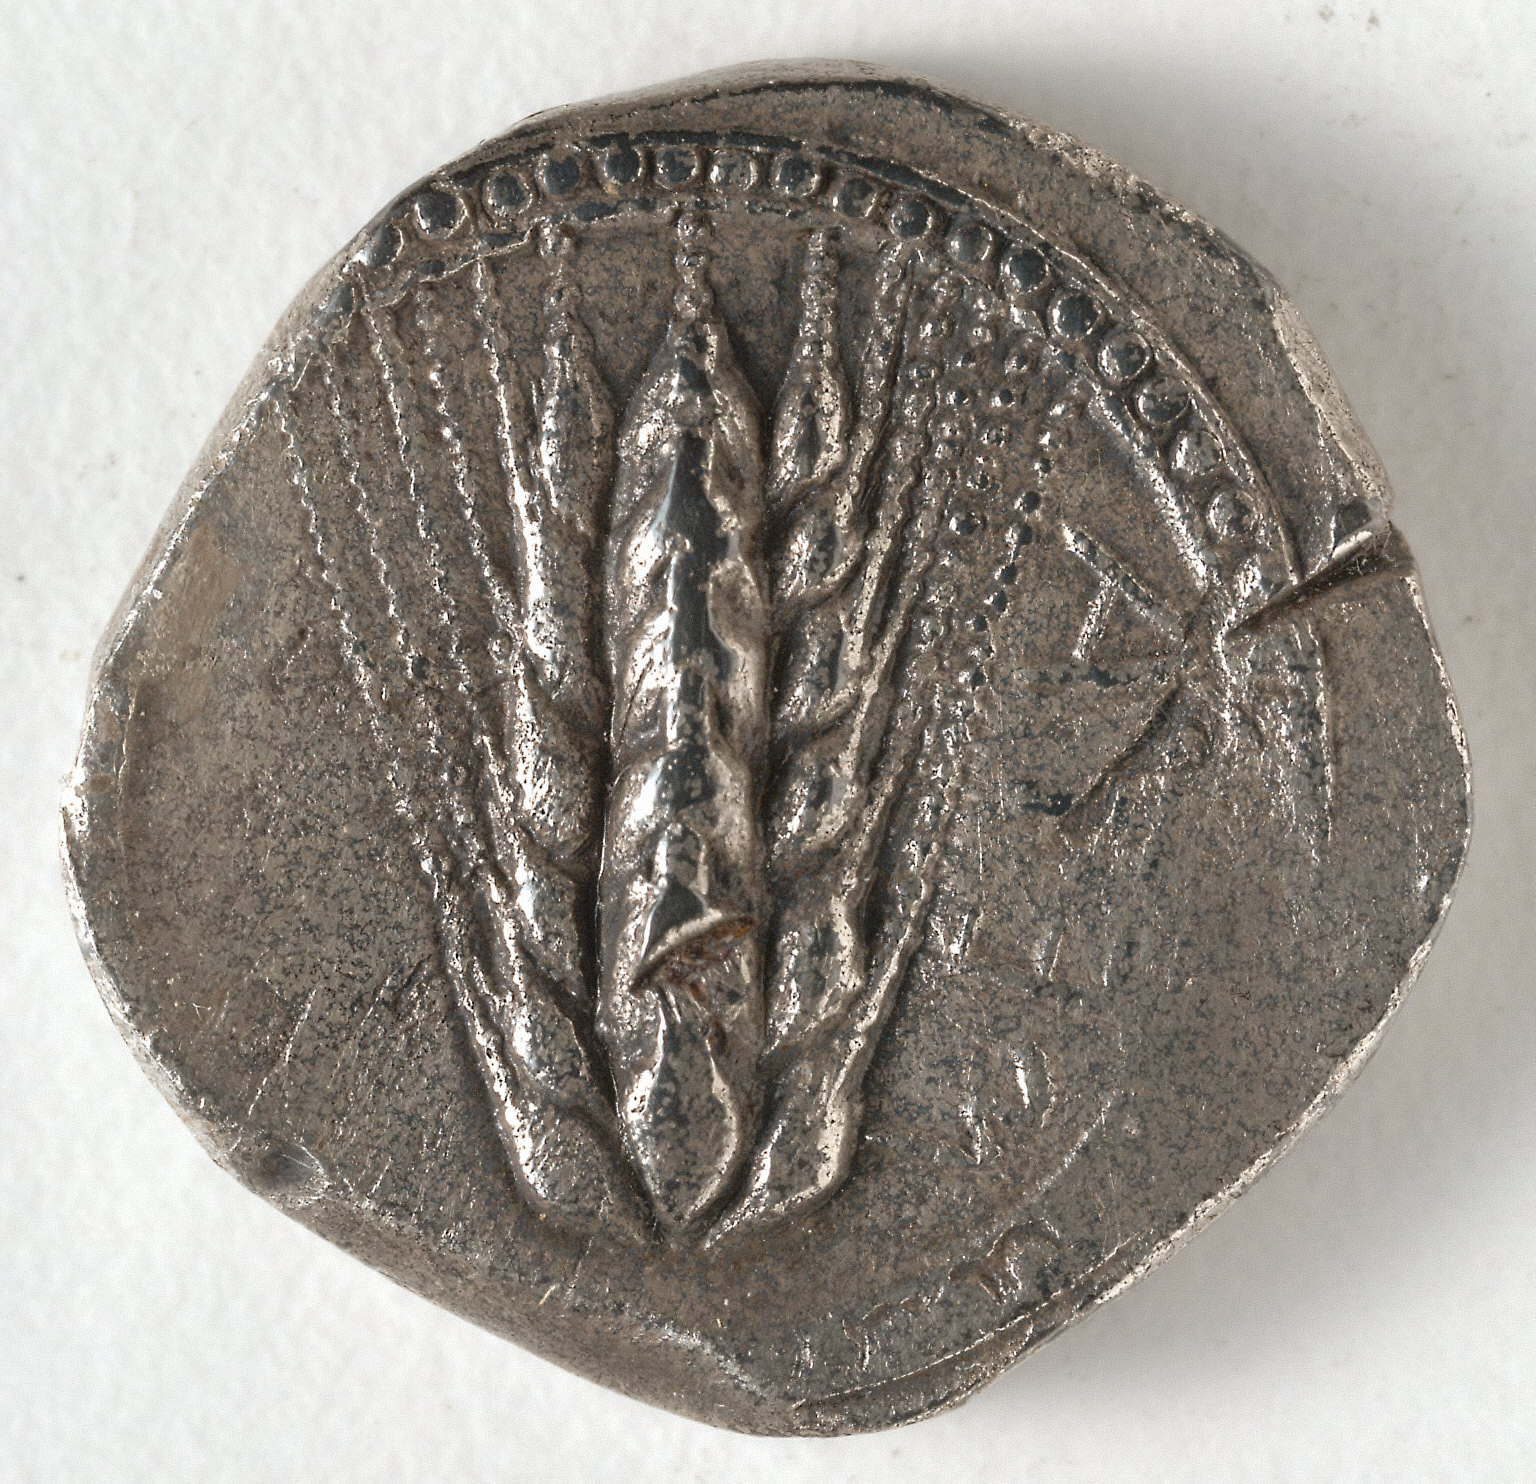 Stater: Ear of Corn (obverse)